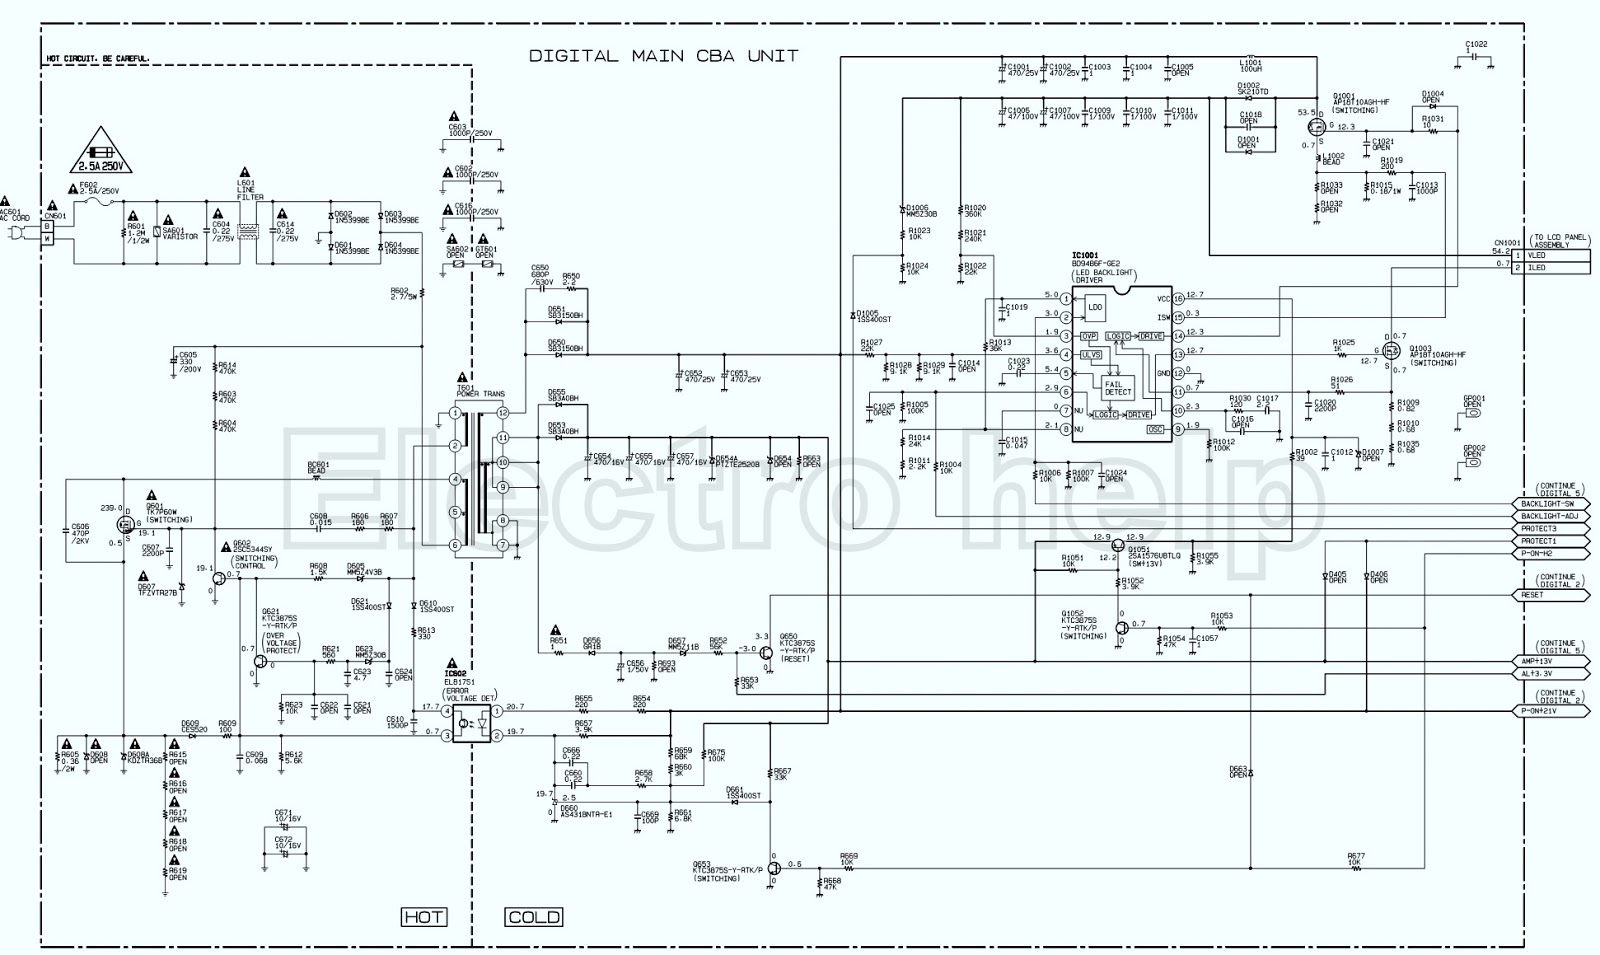 philips led lcd tv type g smps circuit diagram. Black Bedroom Furniture Sets. Home Design Ideas